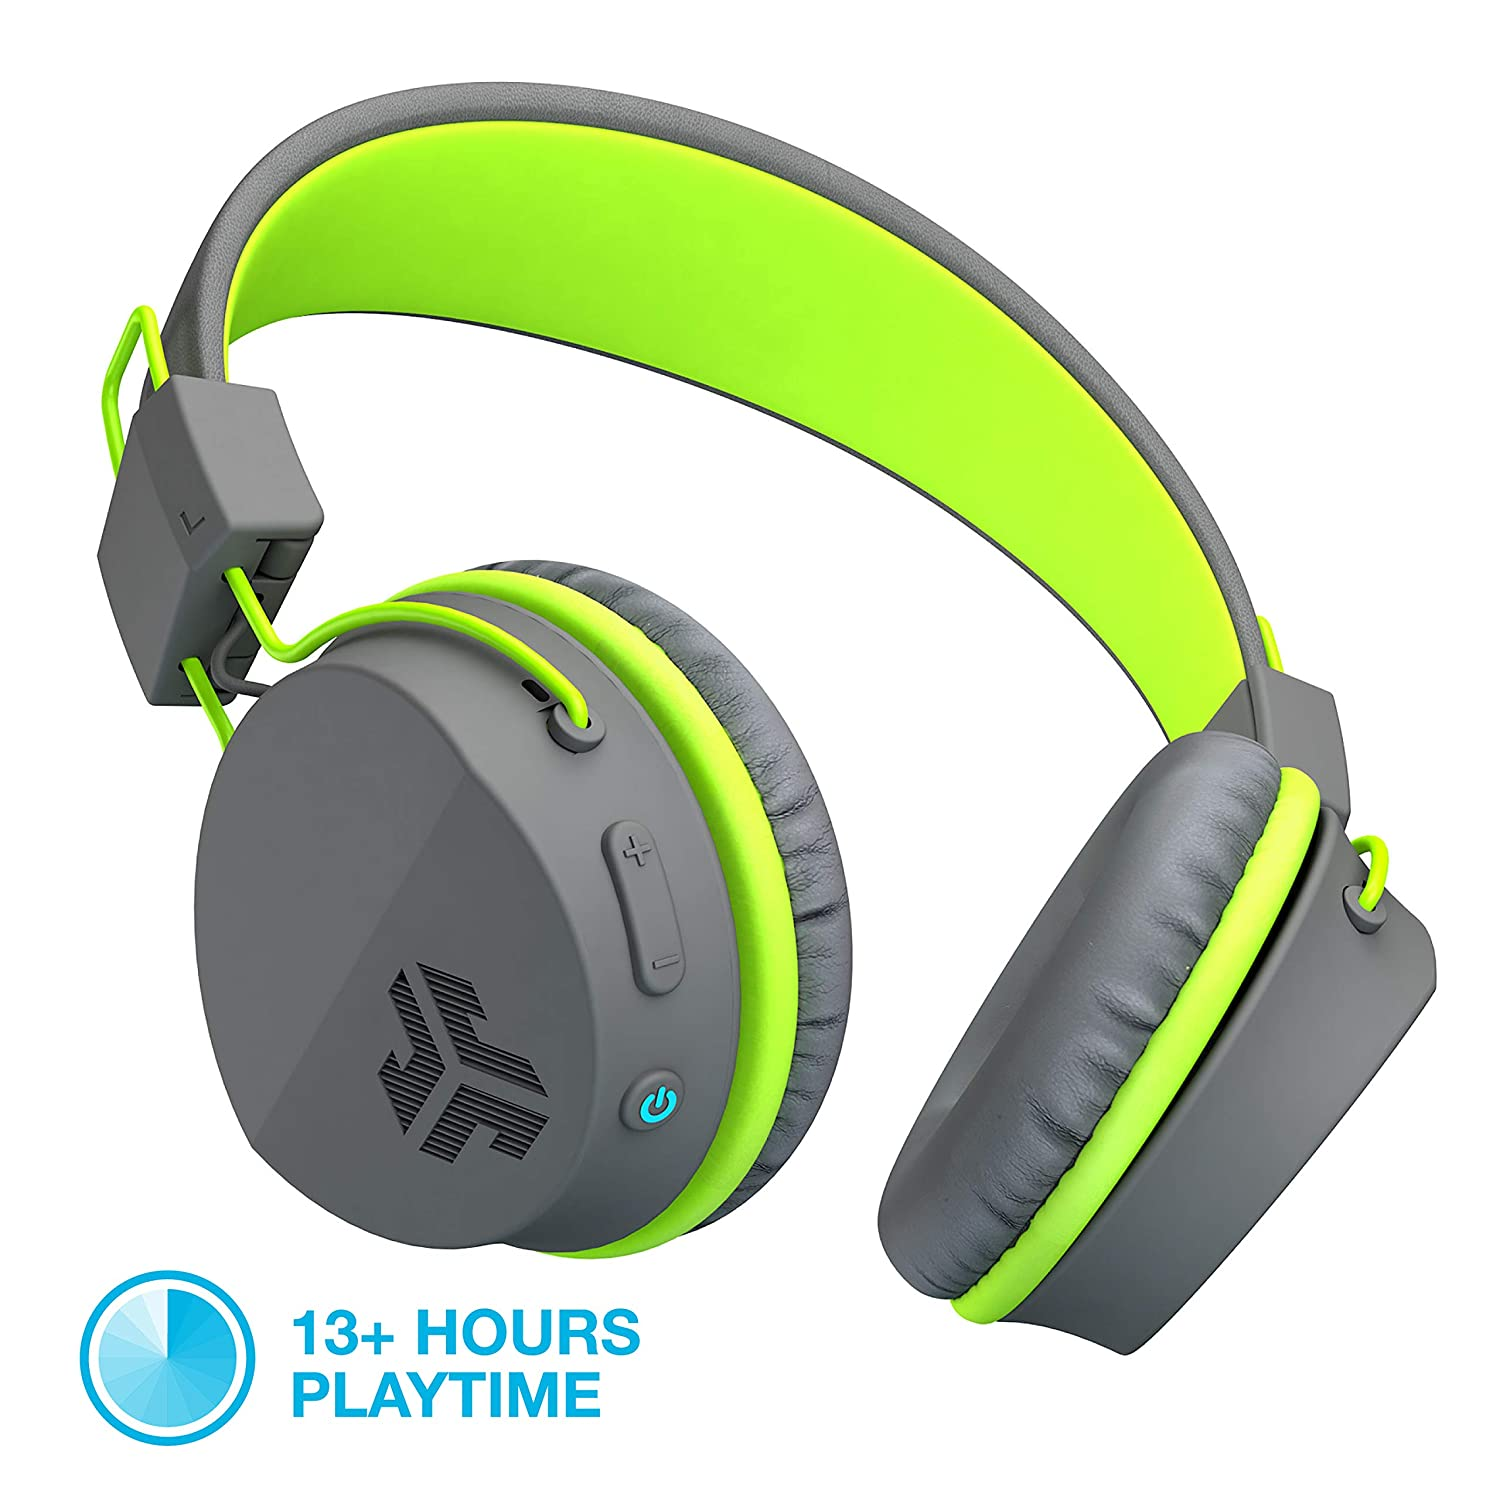 JLab Audio Neon Bluetooth Folding On-Ear Headphones Wireless Headphones 13 Hour Bluetooth Playtime Noise Isolation 40mm Neodymium Drivers C3 Sound Crystal Clear Clarity Graphite Green